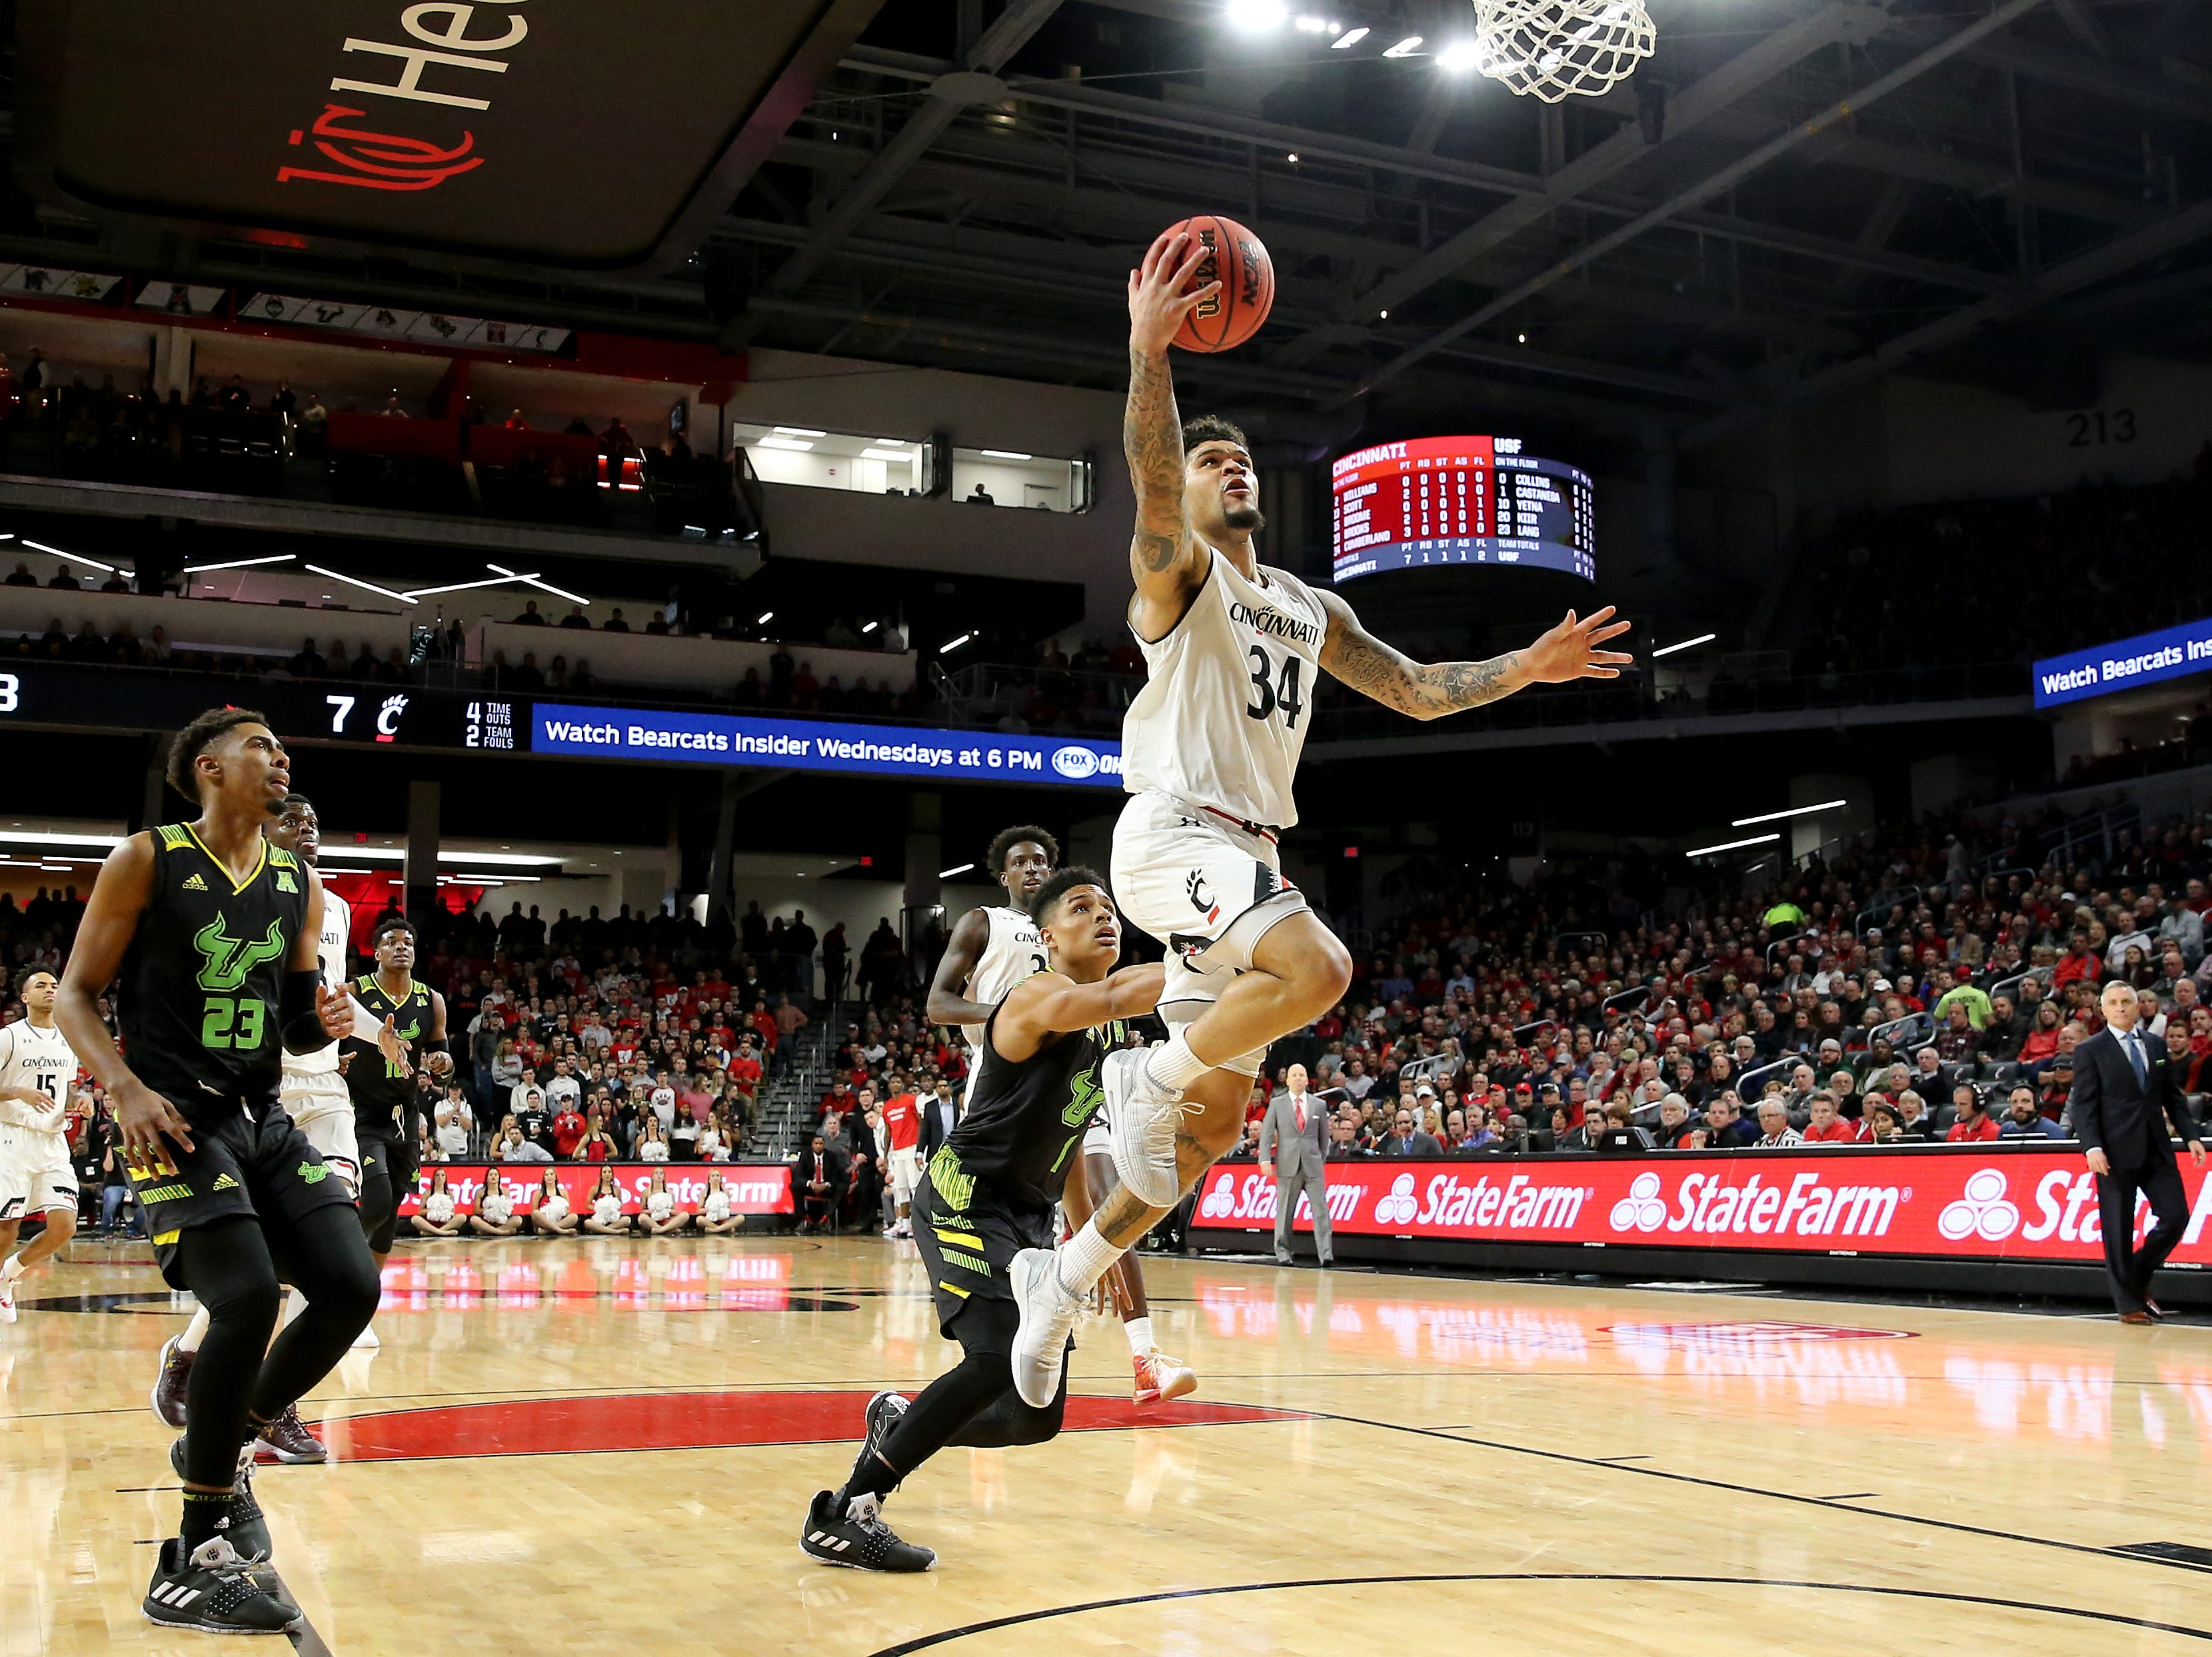 Cincinnati Bearcats guard Jarron Cumberland (34) goes up for a layup in the first half of an NCAA college basketball game against the South Florida Bulls, Tuesday, Jan. 15, 2019, at Fifth Third Arena in Cincinnati.